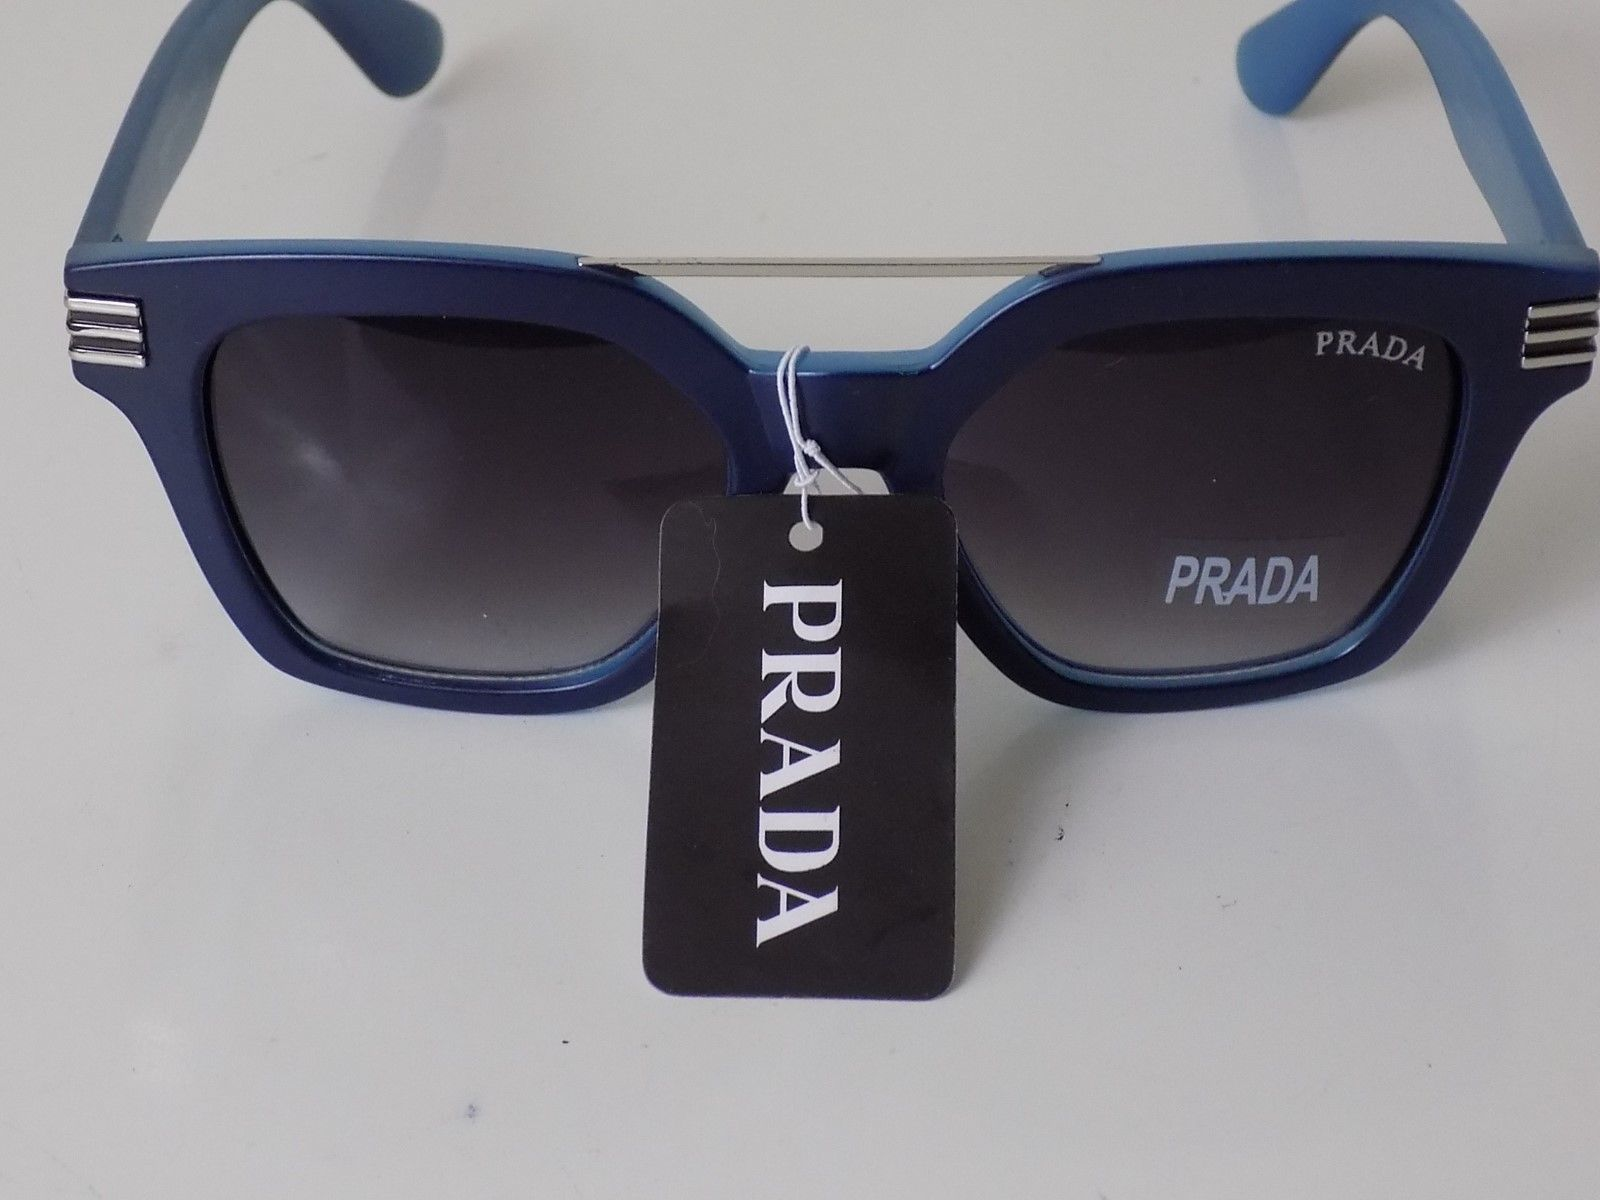 f14e4d4cca5 ... discount code for prada womens sunglasses mod spr1ns made in italy  d833f ecb32